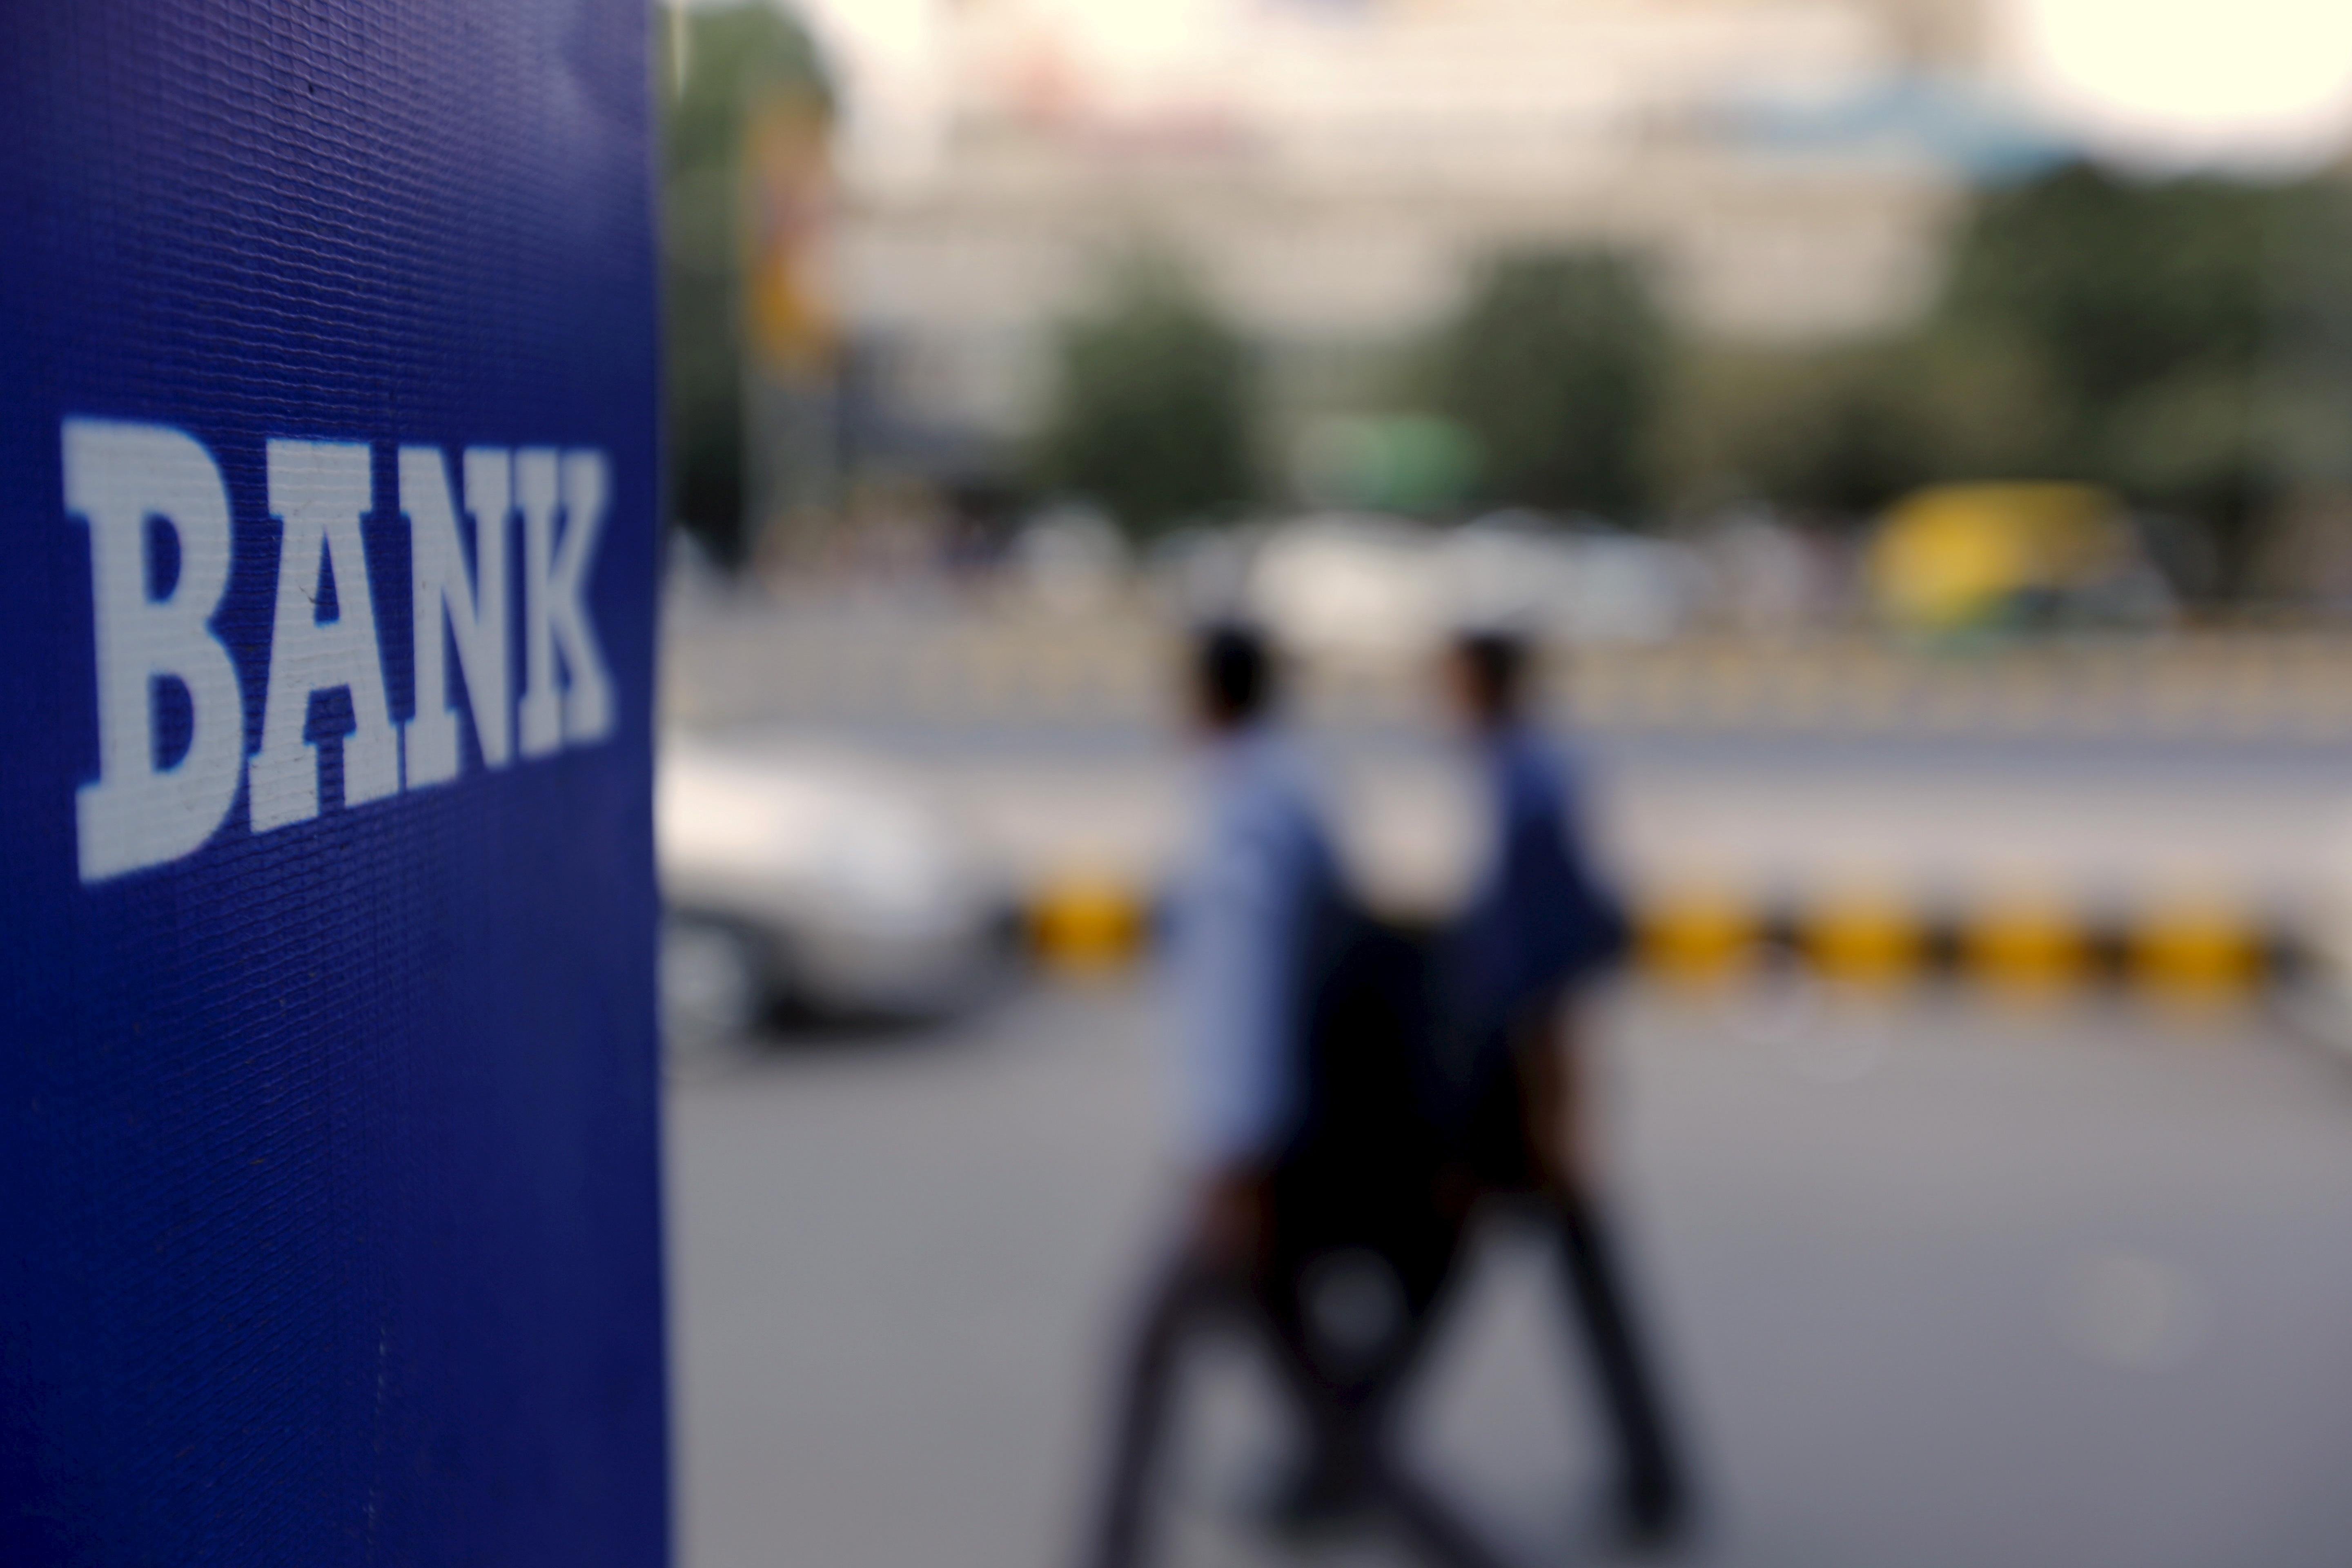 Risk of contagion in India's financial sector rising - rating agencies